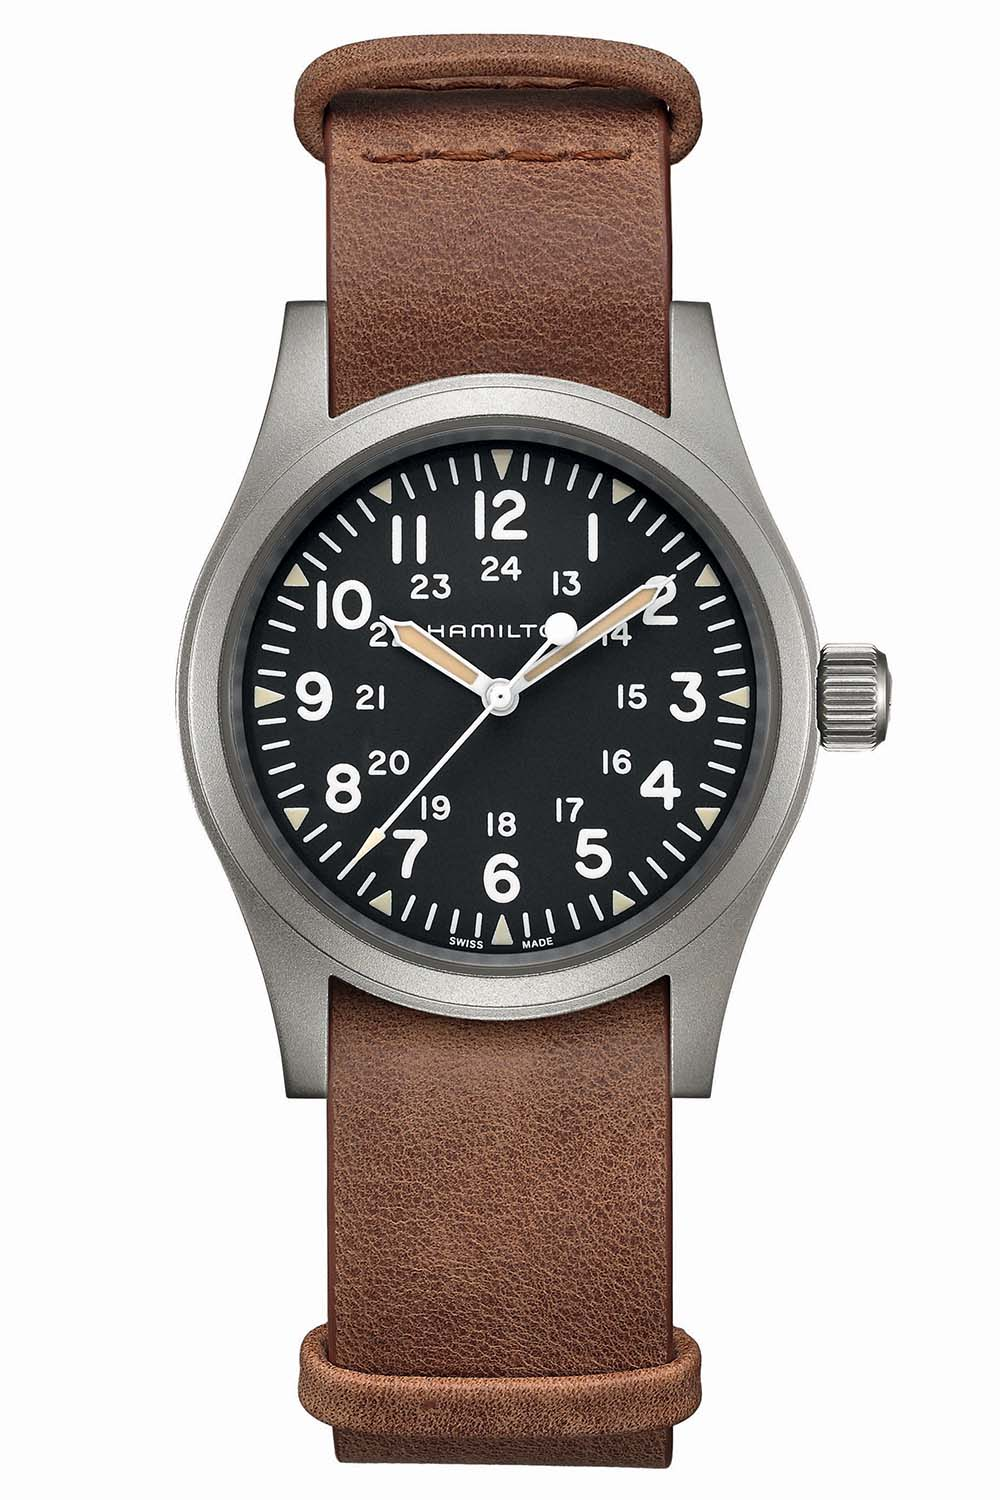 Hamilton Khaki Field Mechanical 2019 - 8